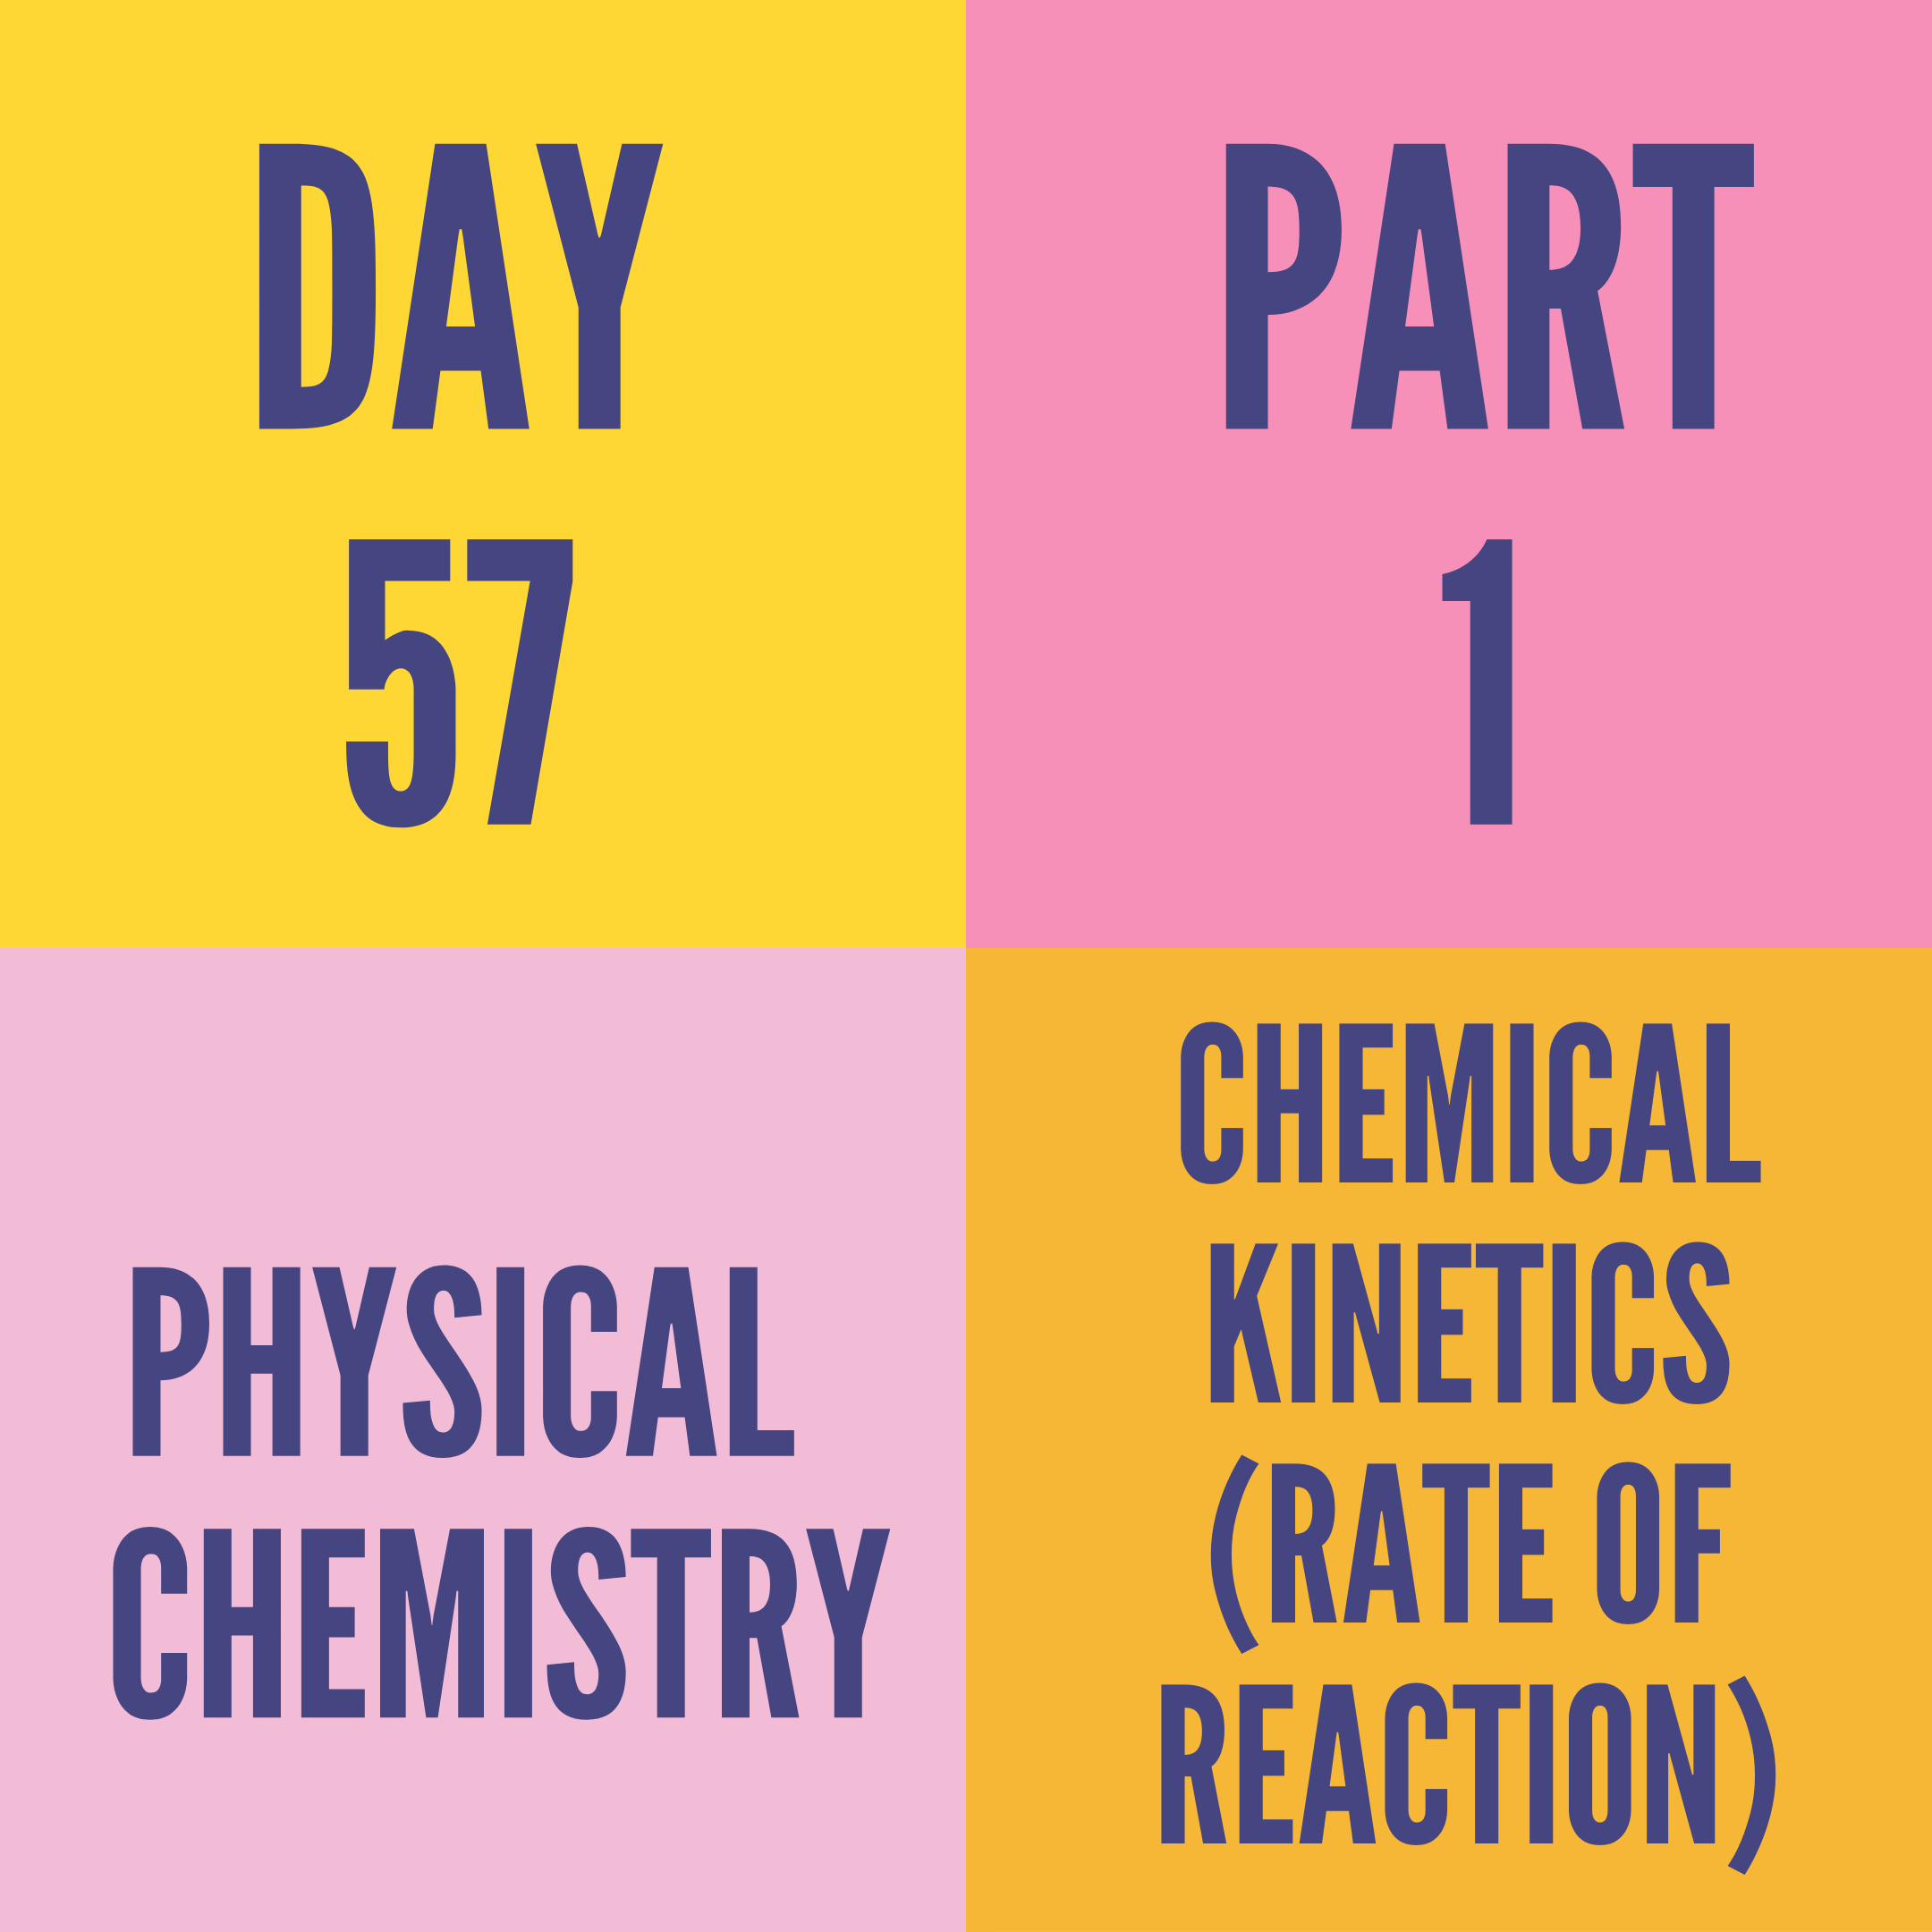 DAY-57 PART-1 CHEMICAL KINETICS (RATE OF REACTION)